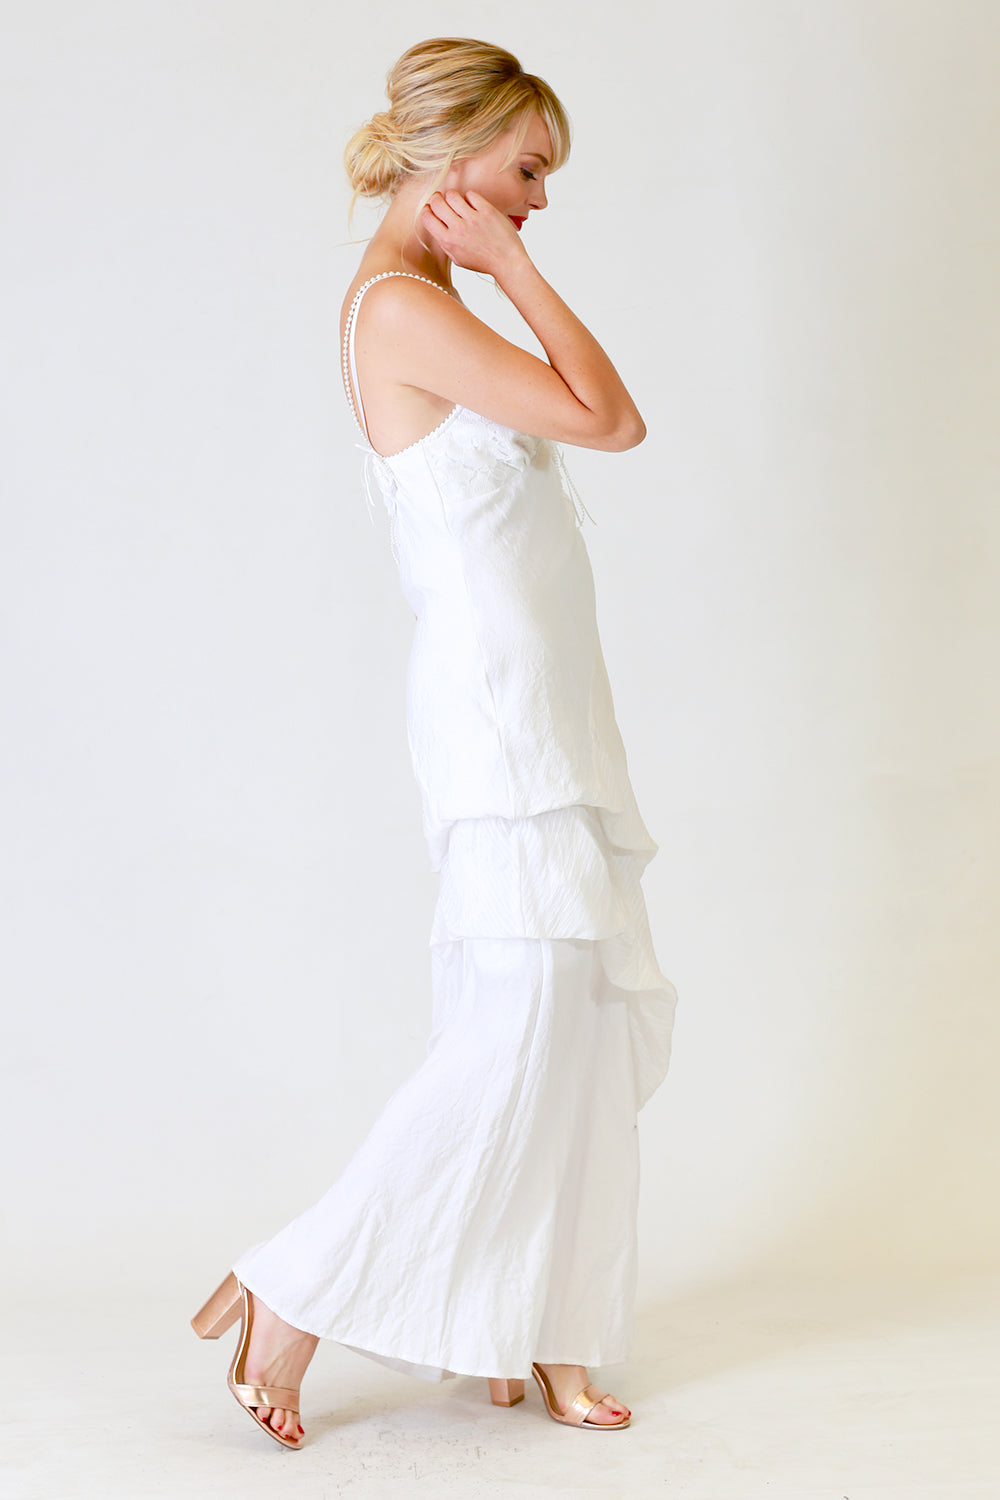 Hayley Ruby Dress, Annah Stretton Bridal, Ivory Wedding Dress, Shot on Model